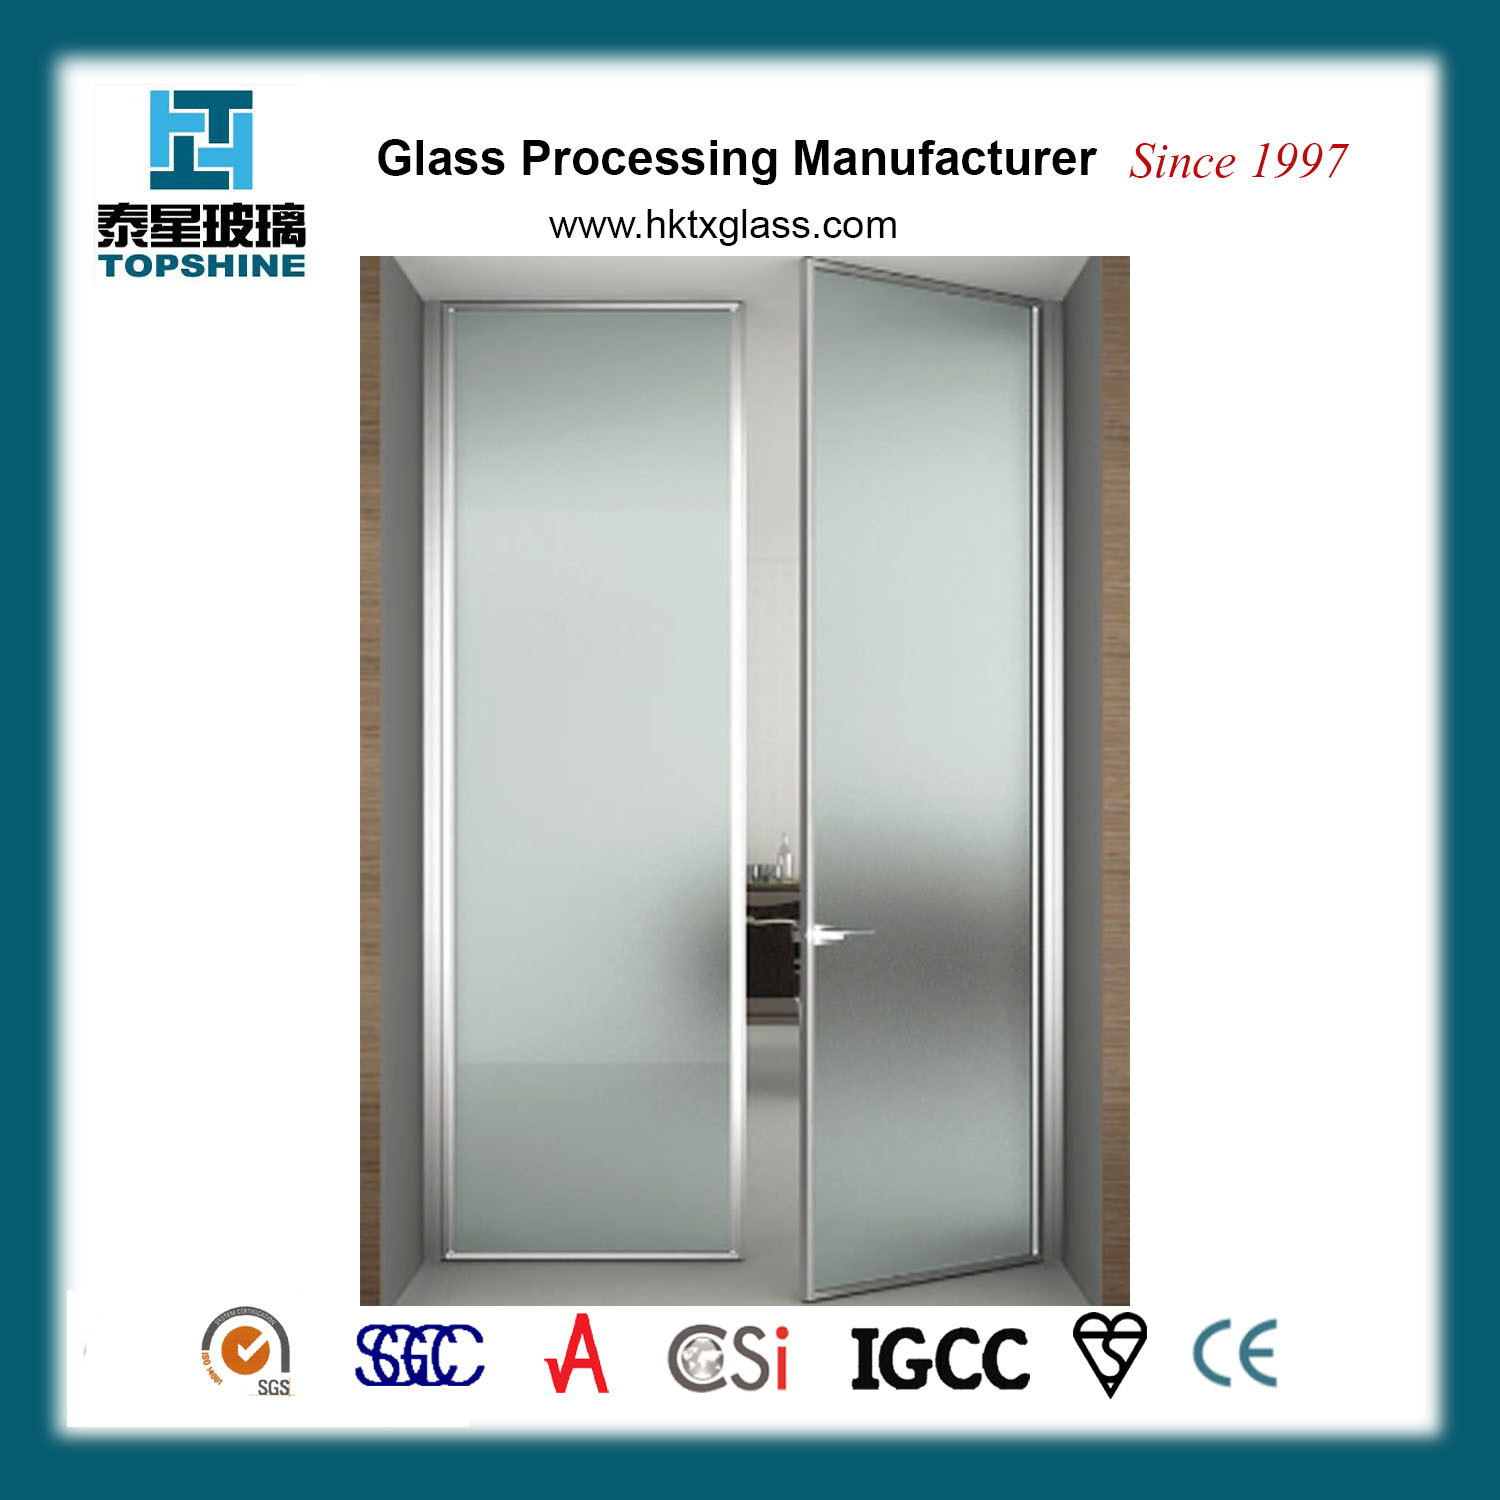 China Interior Frosted Glass Door Tempered Glass Door Frosted Glass Interior French Doors China Shower Frameless Glass Doors Bathroom Frameless Glass Doors